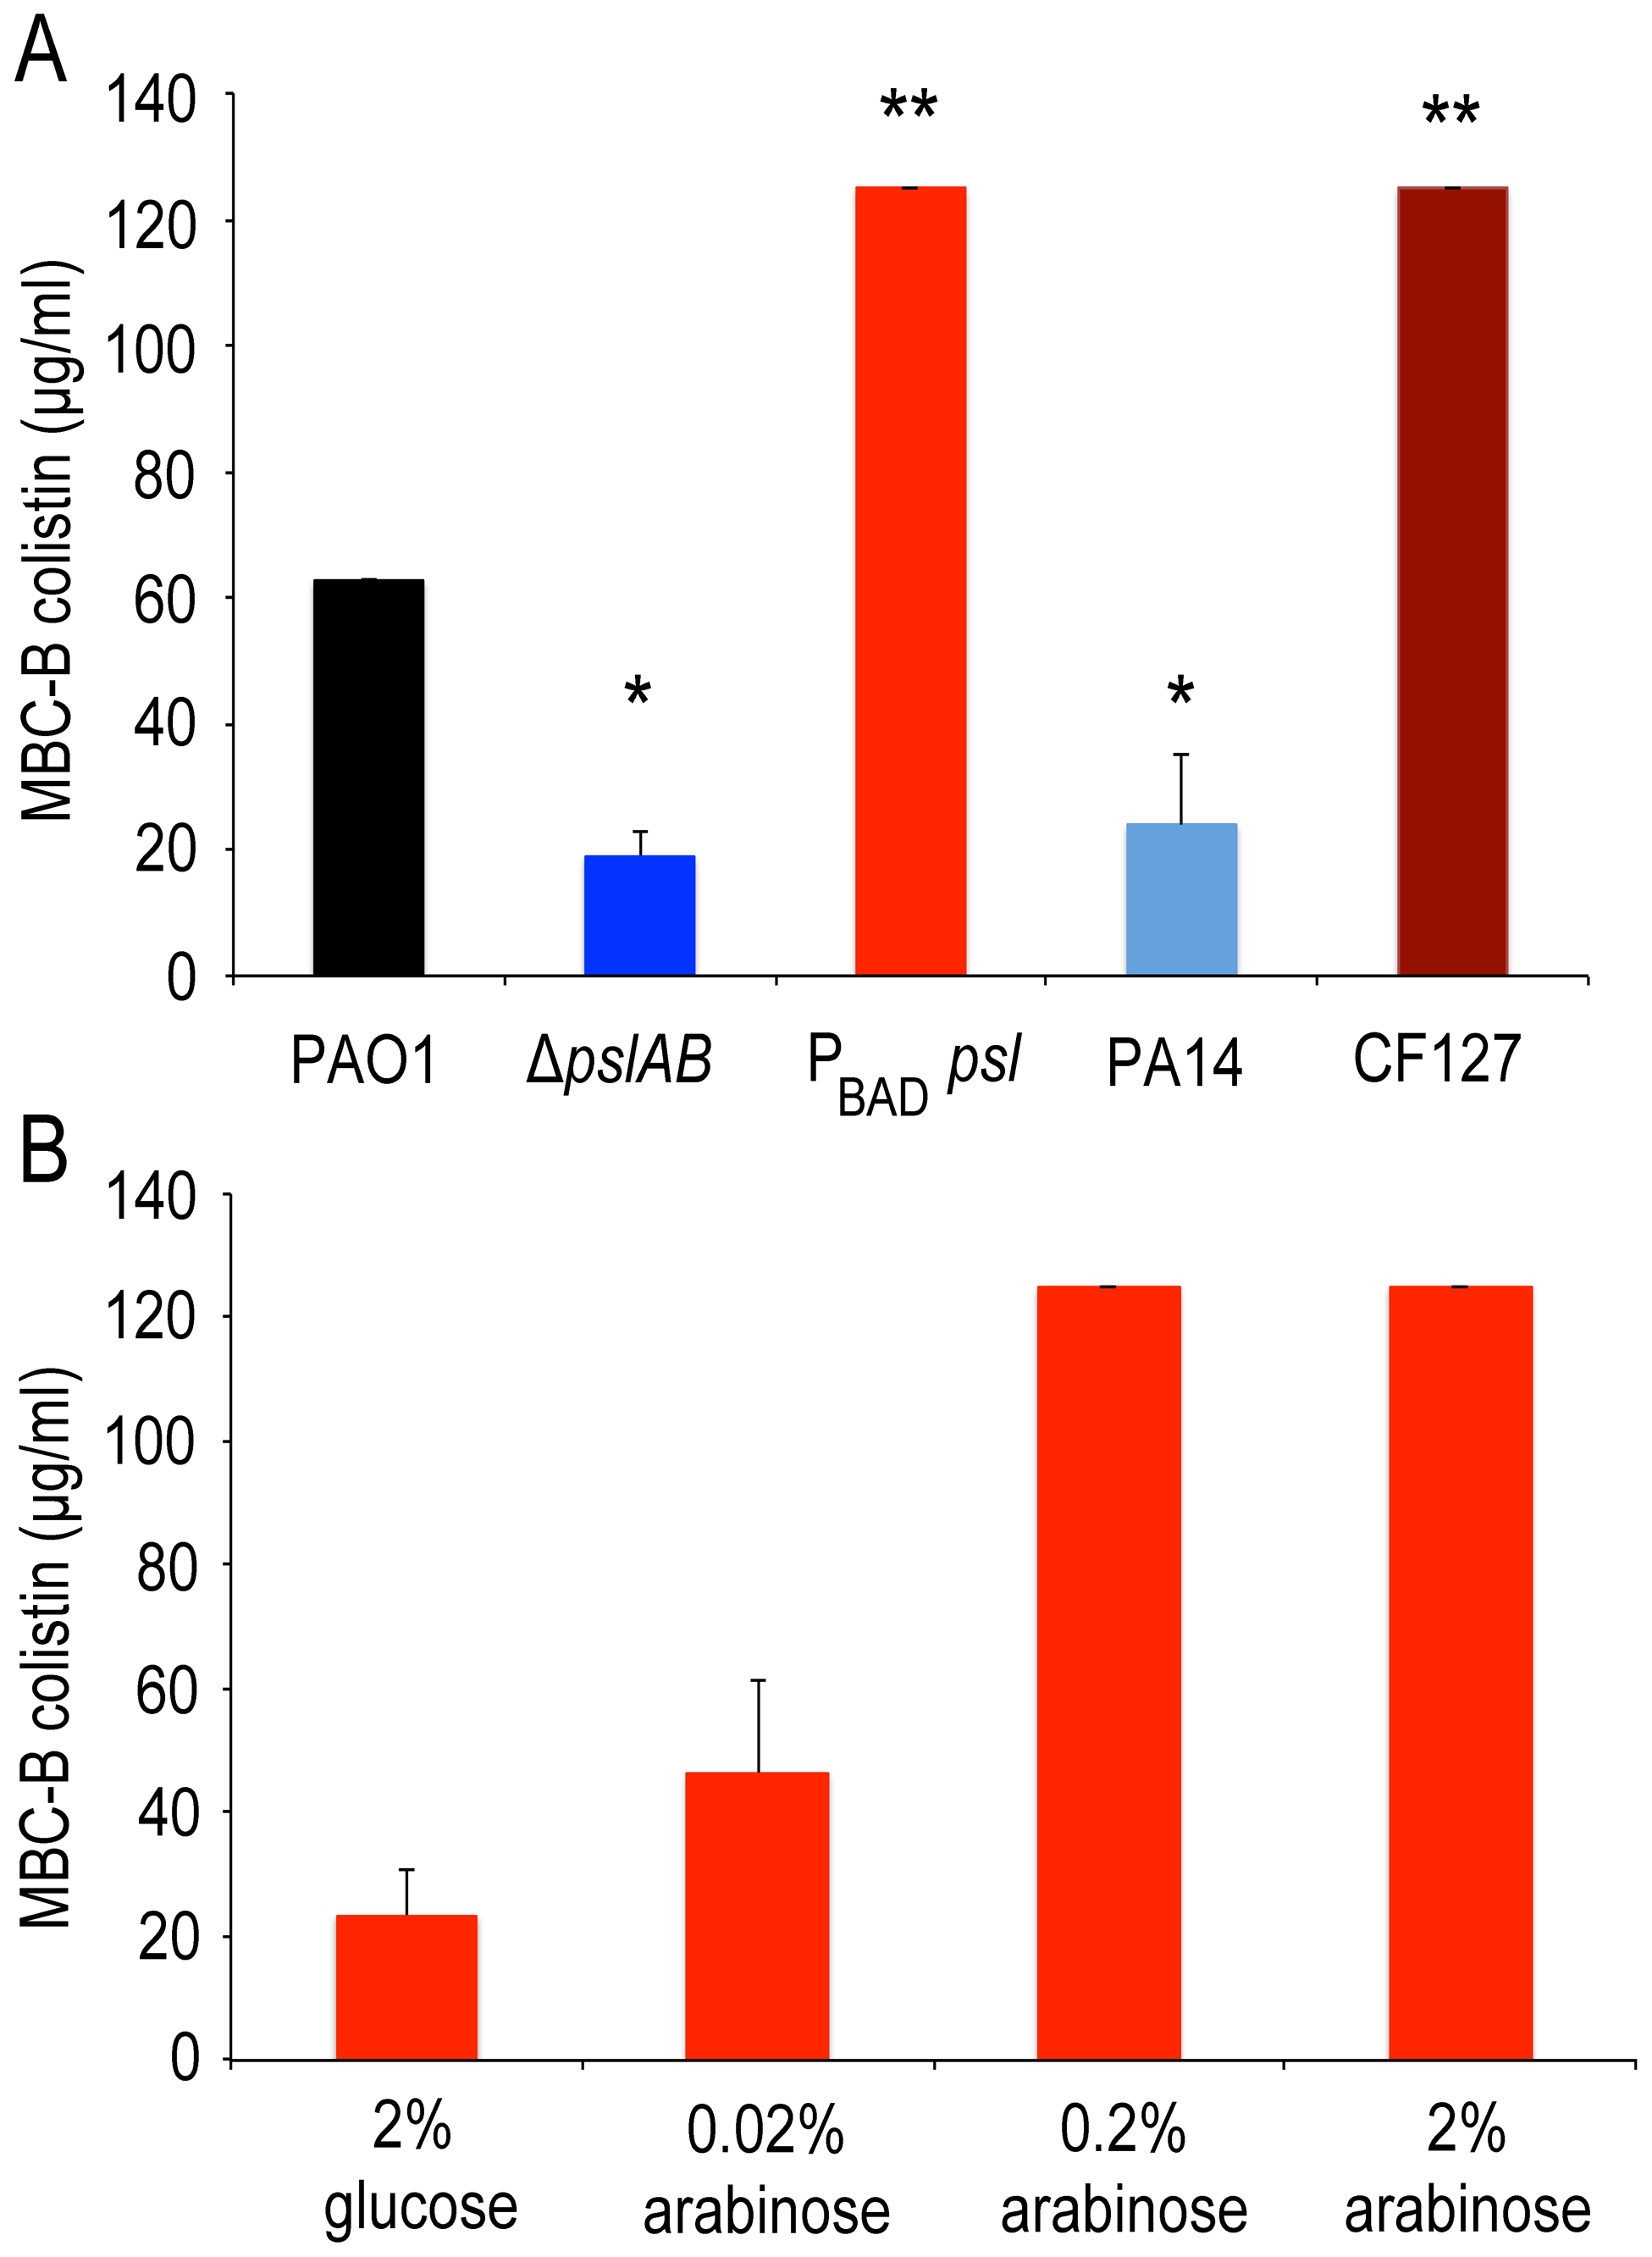 Over-expression of <i>psl</i> increases biofilm tolerance to colistin.